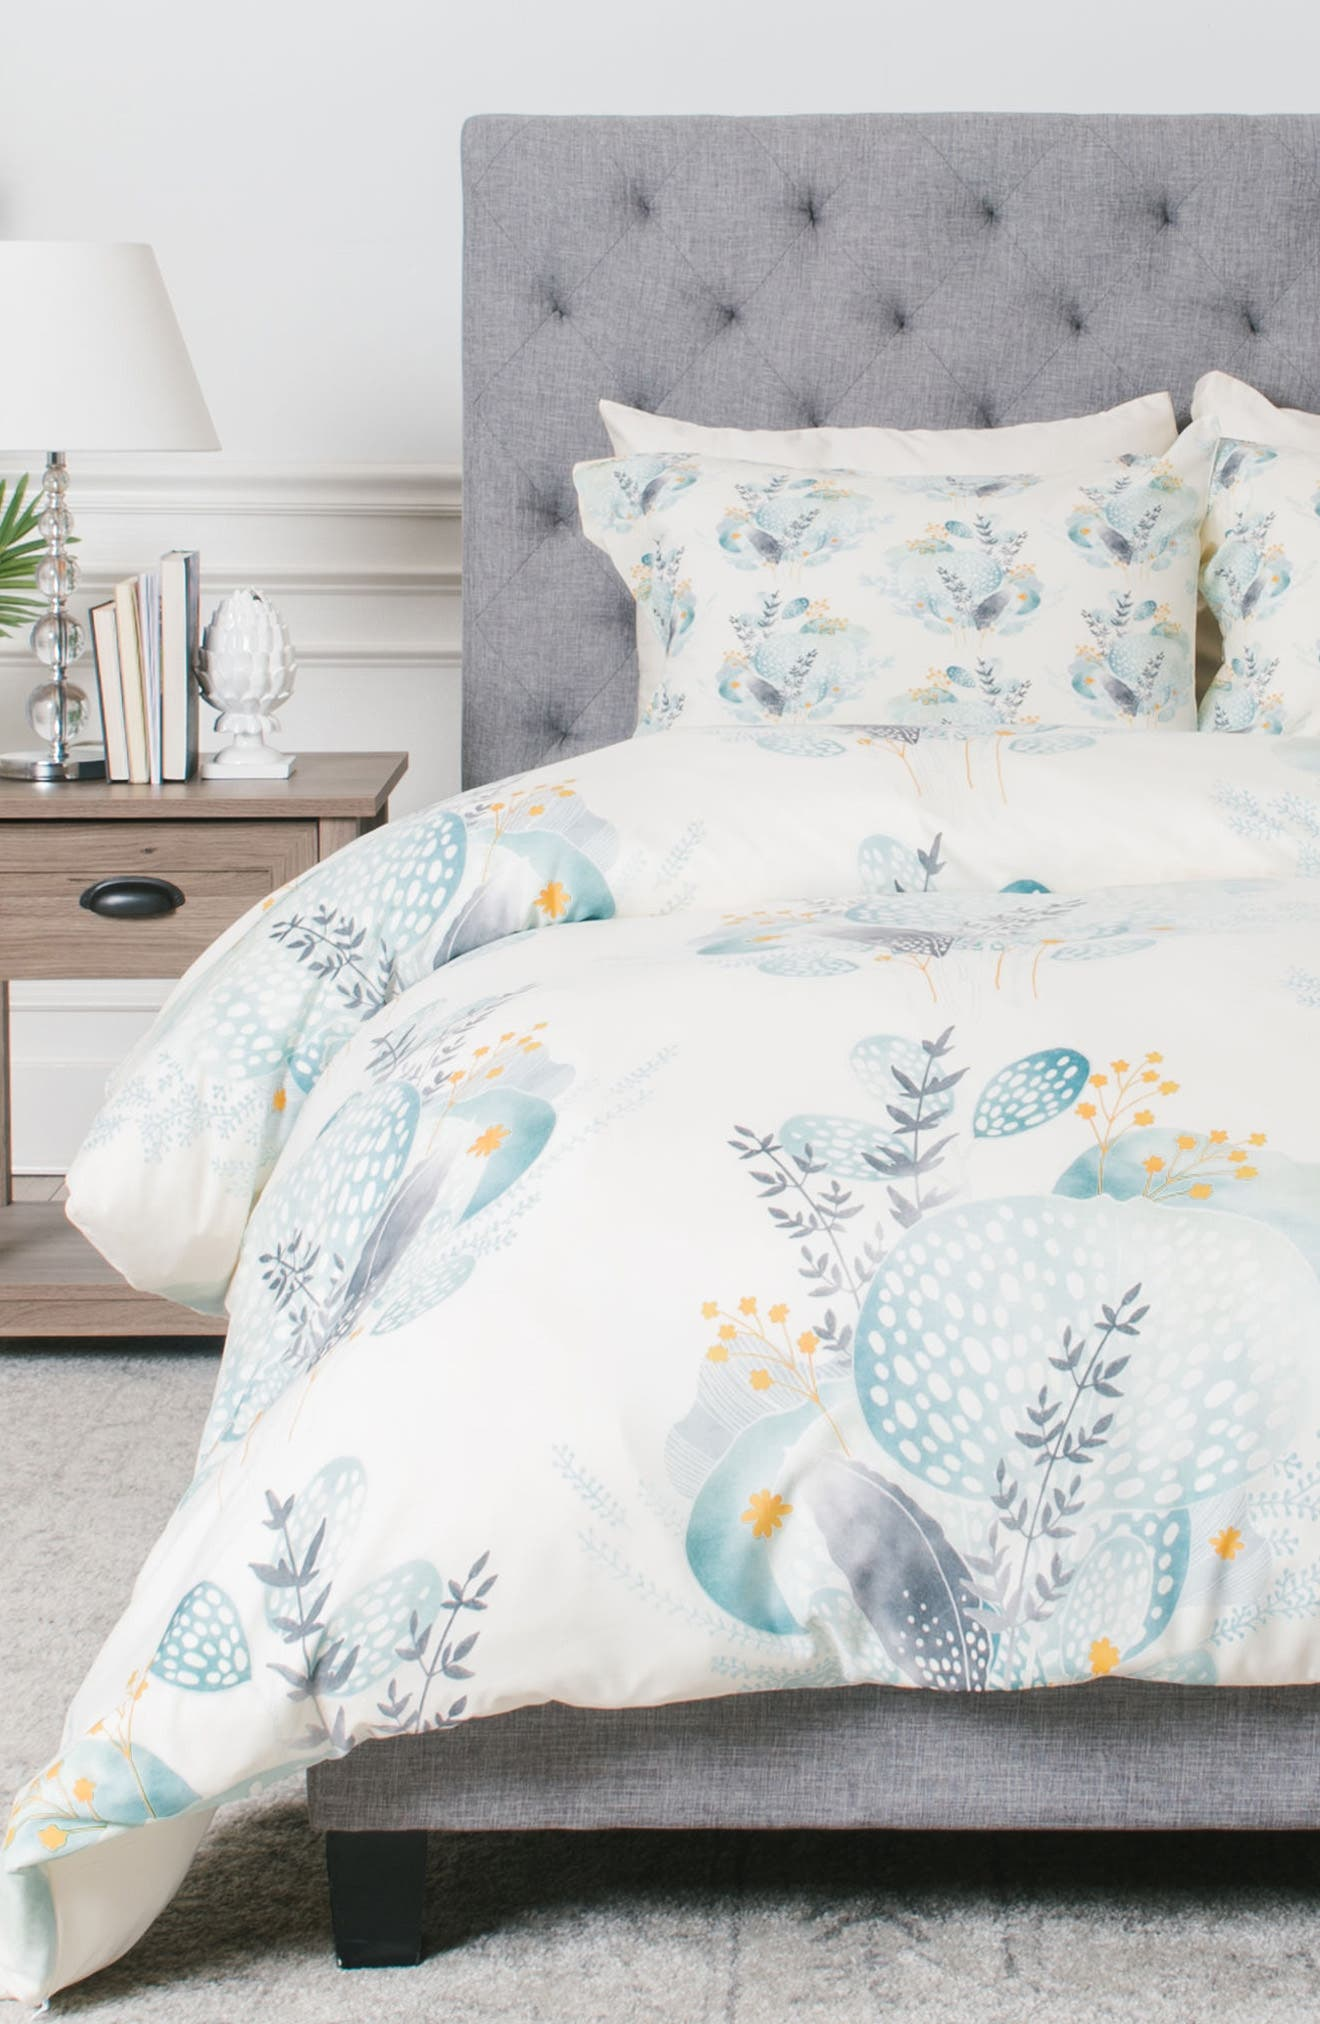 DENY DESIGNS Seaflower Duvet Cover & Sham Set